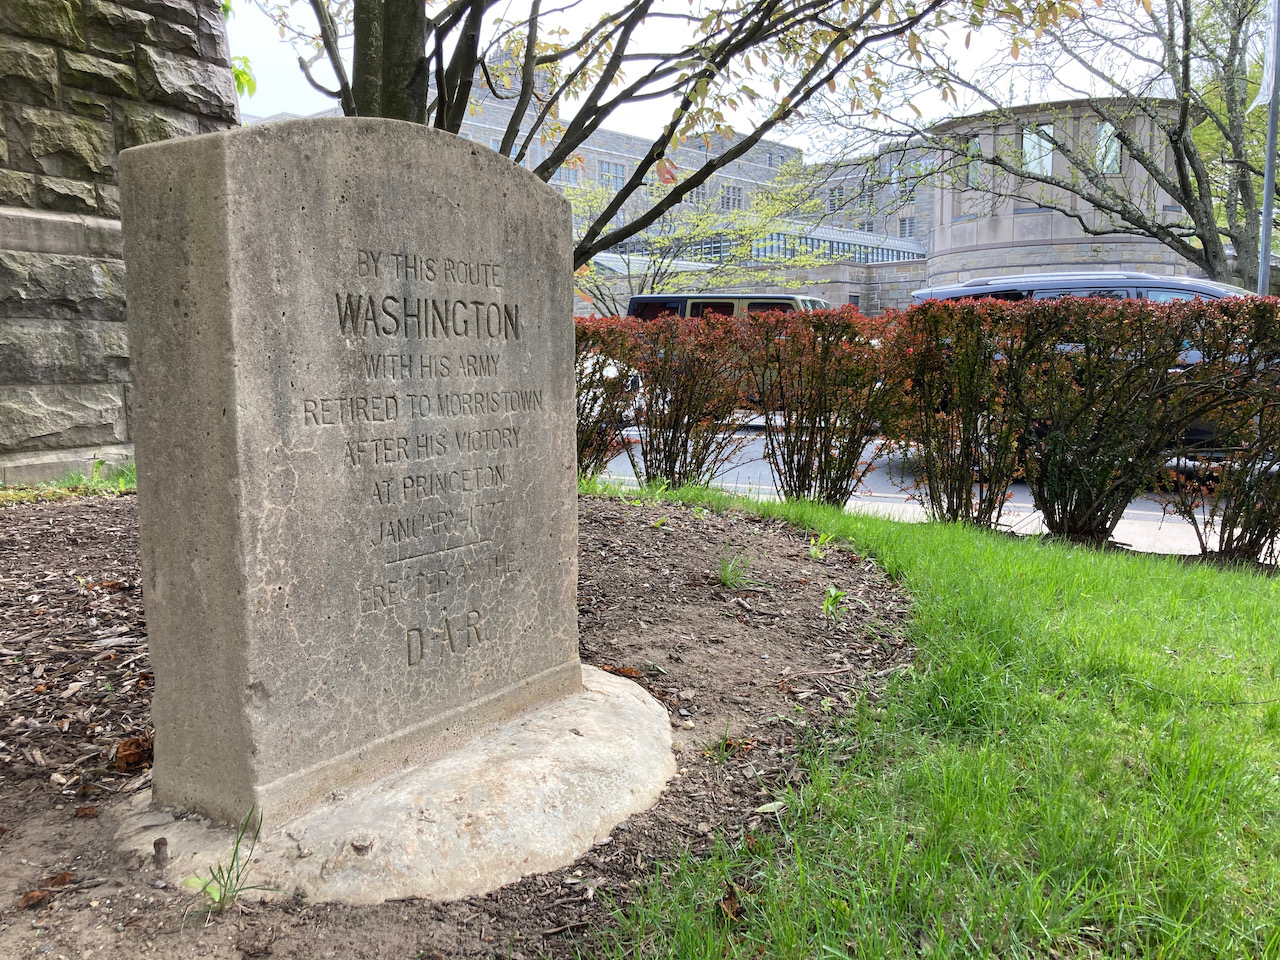 Stone marker beside building that says BY THIS ROUTE WASHINGTON WITH HIS ARMY RETIRED TO MORRISTOWN AFTER HIS VICTORY AT PRINCETON.